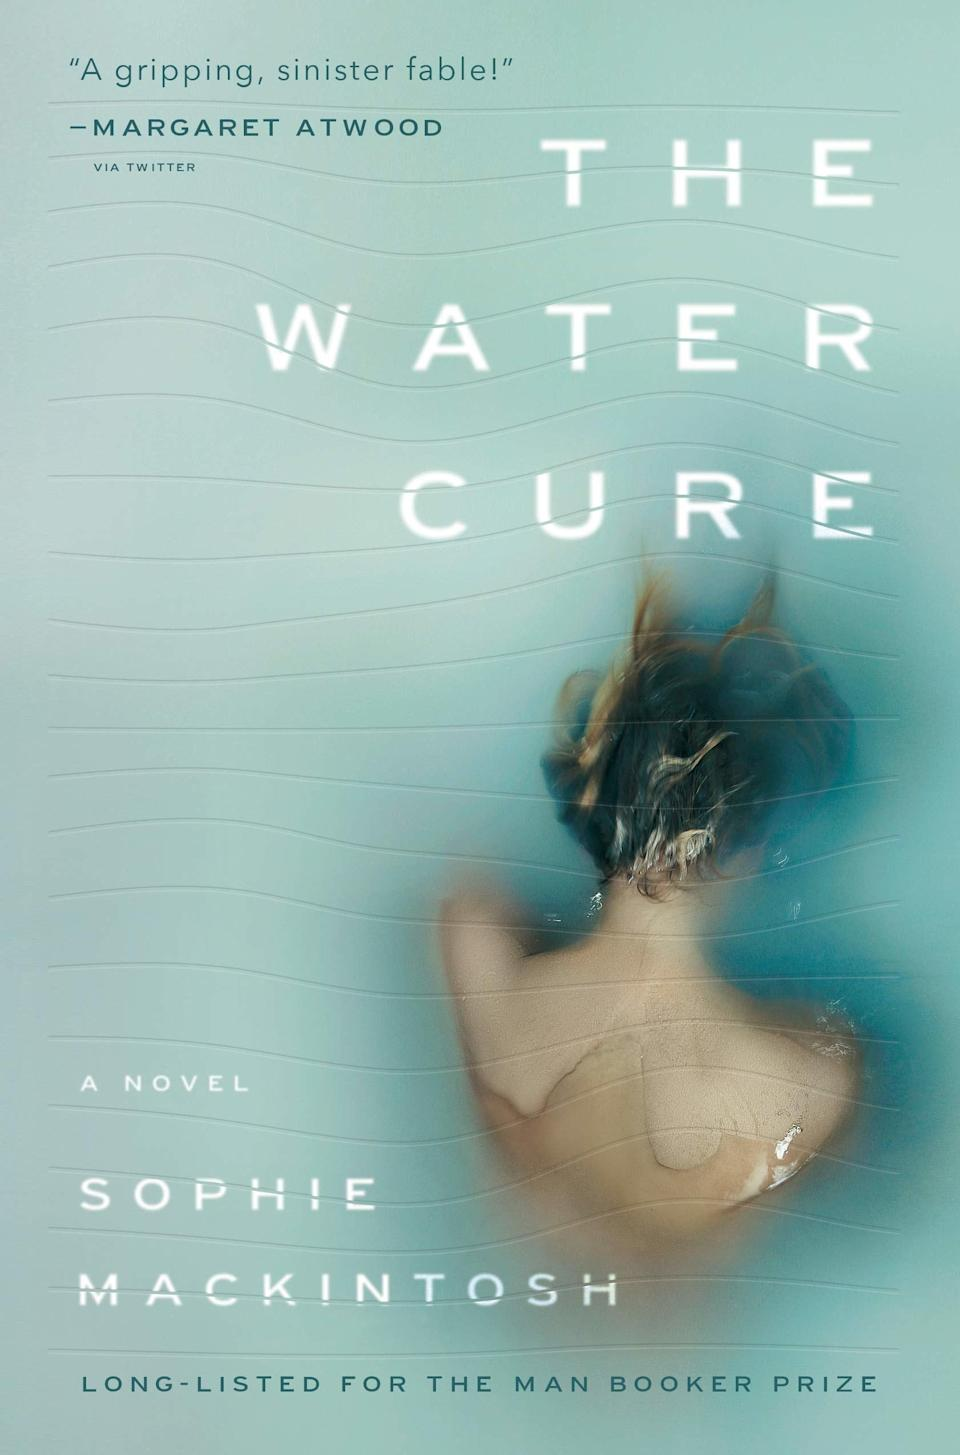 """<em>The Water Cure</em> has drawn instant comparisons to <em><a href=""""https://www.glamour.com/story/the-handmaids-tale-max-minghella-on-his-character-nick?mbid=synd_yahoo_rss"""" rel=""""nofollow noopener"""" target=""""_blank"""" data-ylk=""""slk:The Handmaid's Tale"""" class=""""link rapid-noclick-resp"""">The Handmaid's Tale</a>,</em> and not just because author Margaret Atwood called it """"a gripping, sinister fable."""" The book centers on Grace, Lia, and Sky, three sisters who live on an isolated island with their mother and their father, whom they call King. When their father disappears, their lives—as well as everything they've been told about the outside world—are upended."""